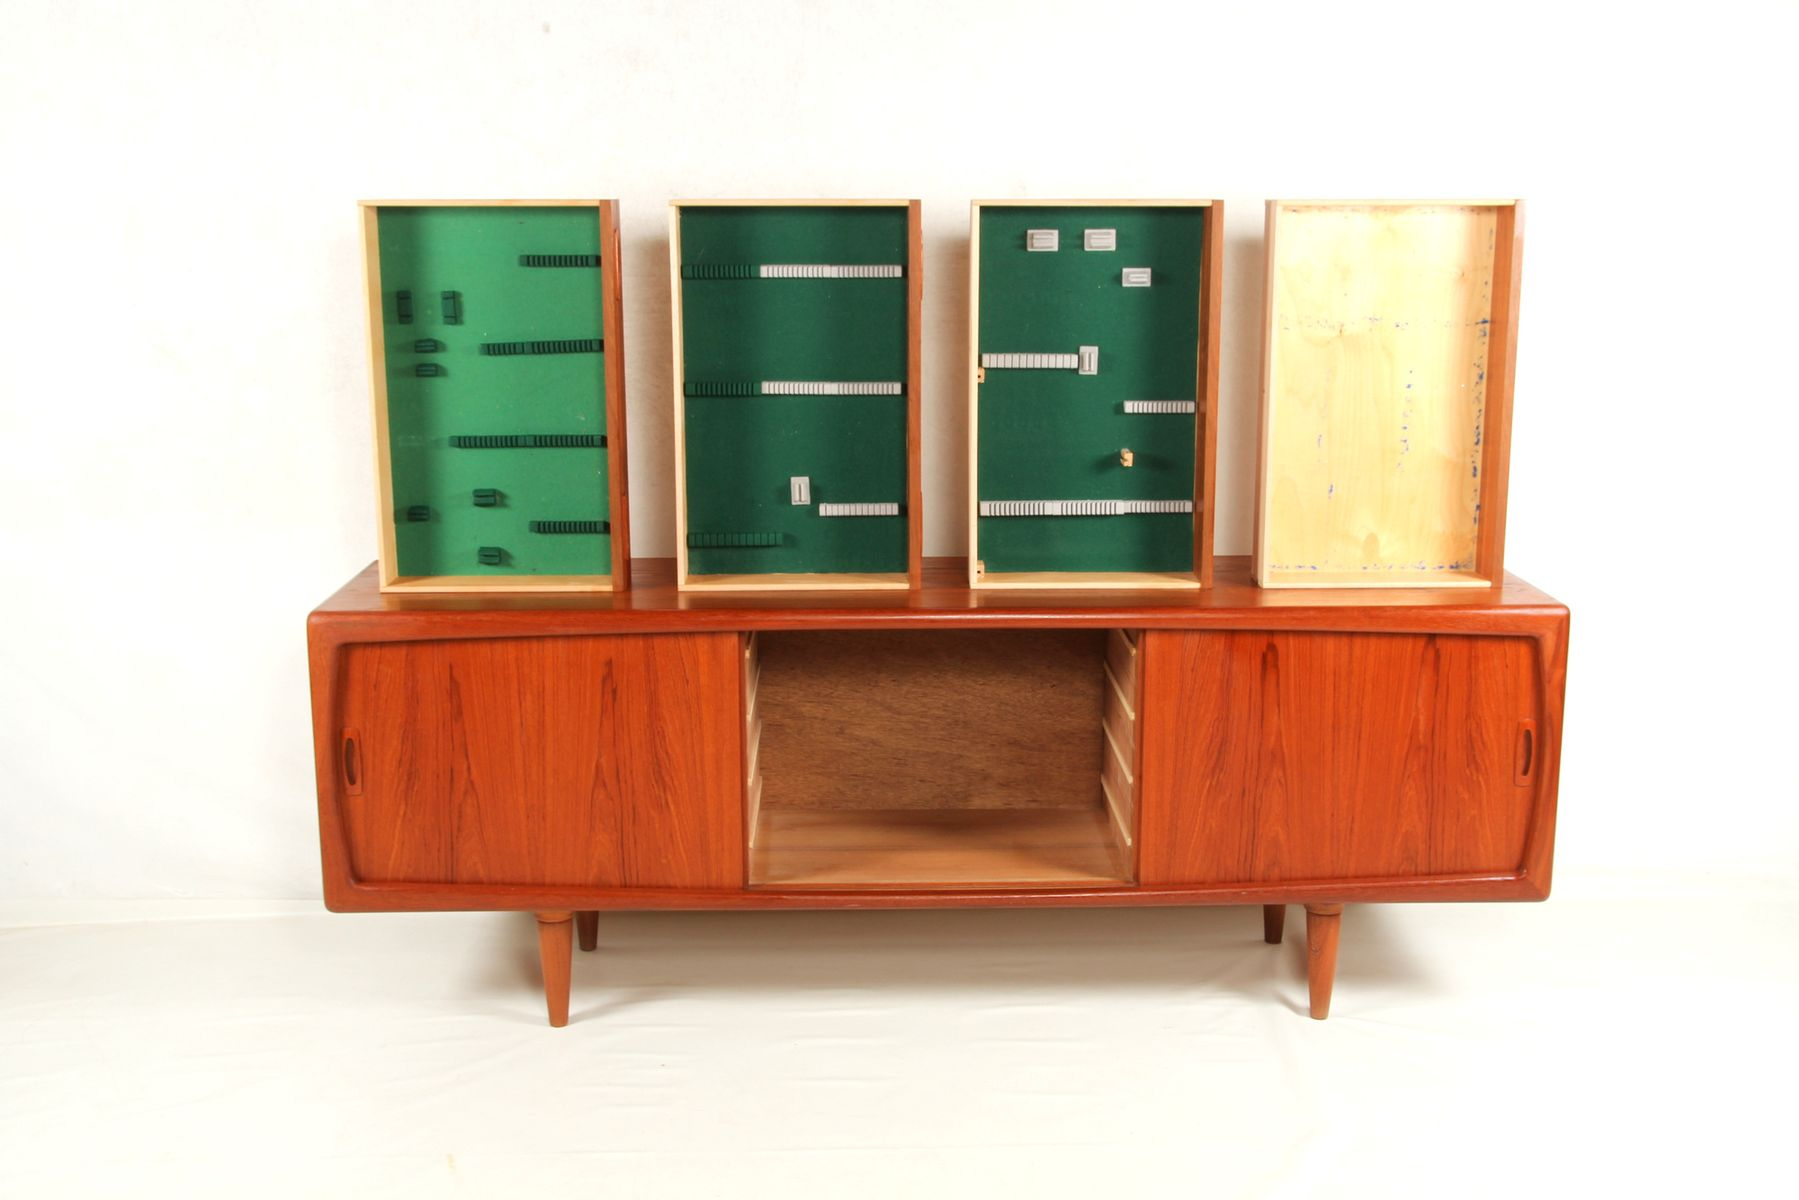 Sideboard by h p hansen 1960s for sale at pamono for Sideboard 3 meter lang